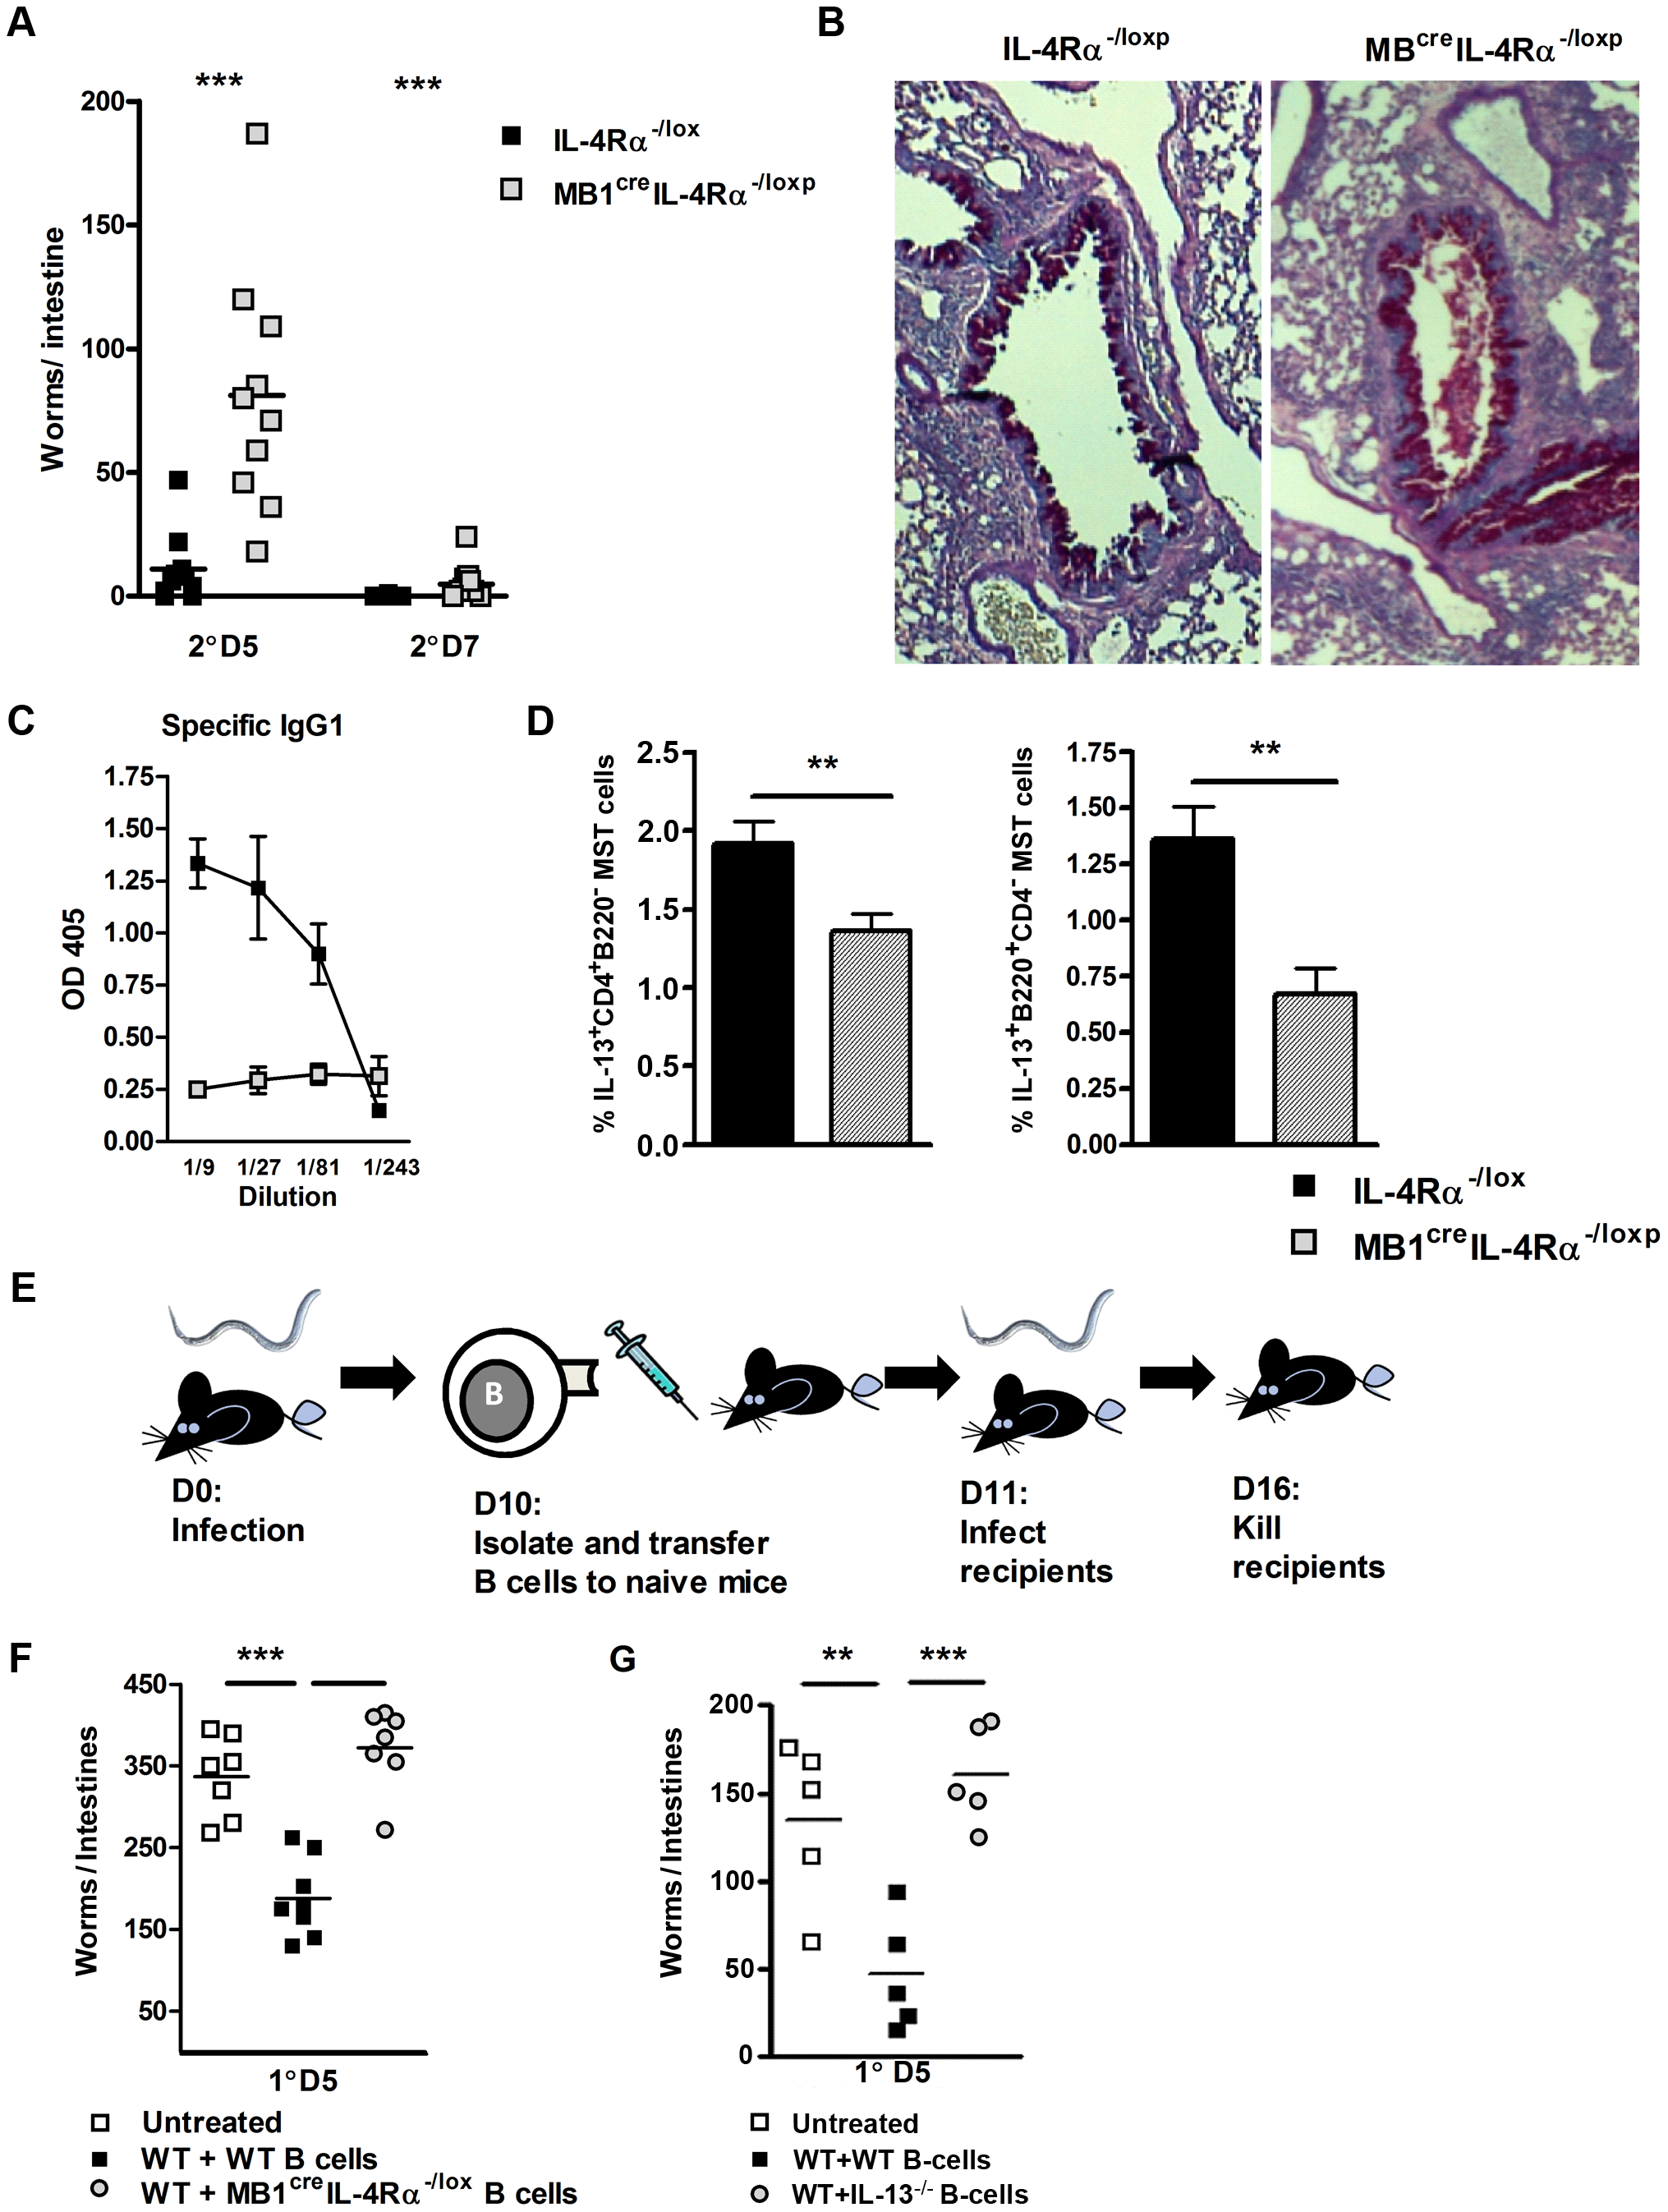 B cell IL-4Rα expression is required for optimal immunity to <i>N. brasiliensis</i> re-infection.